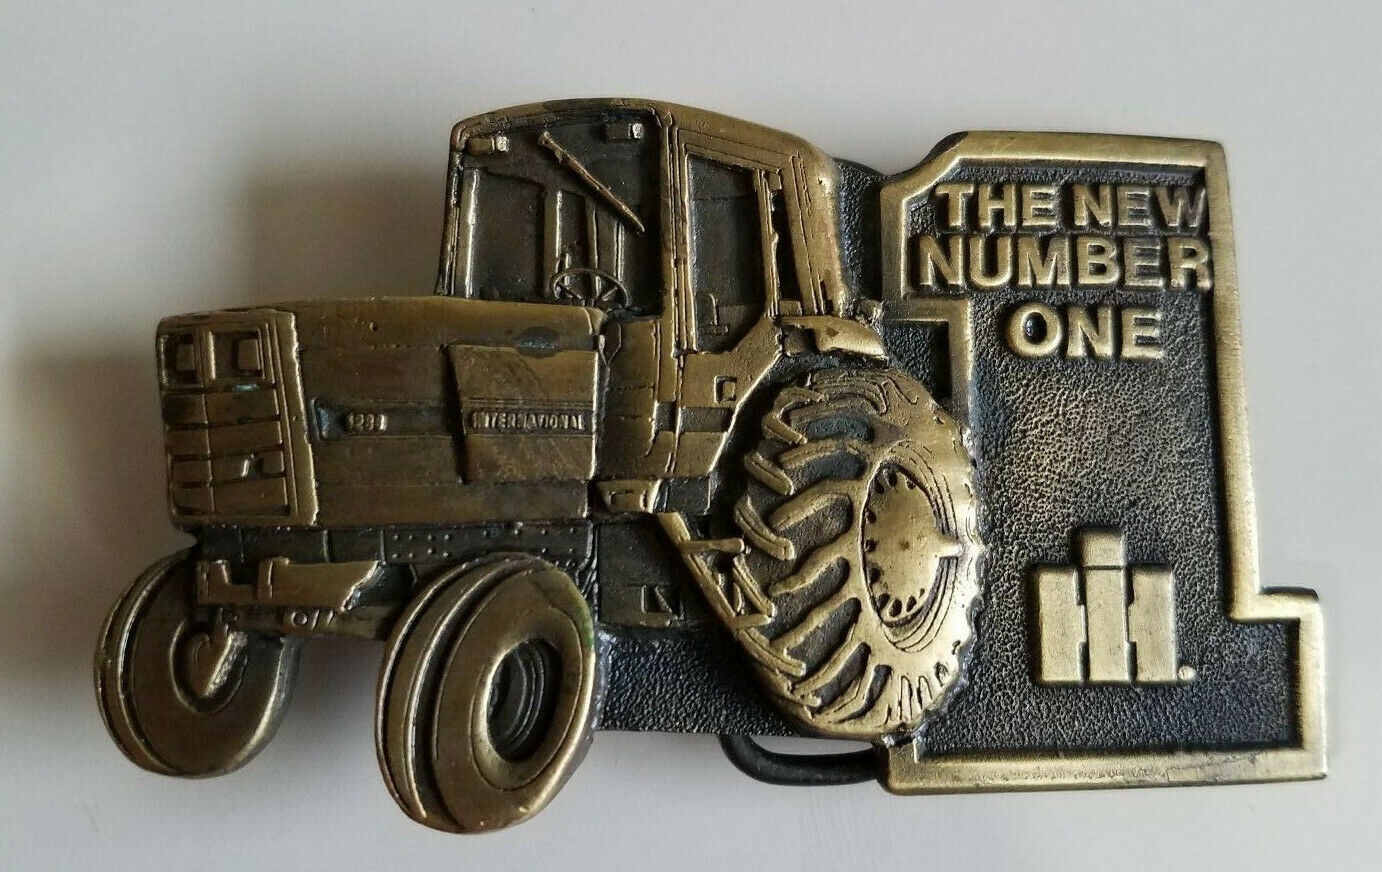 International The New Number One 1 5288 Tractor Brass Spec Cast Inc Belt Buckle